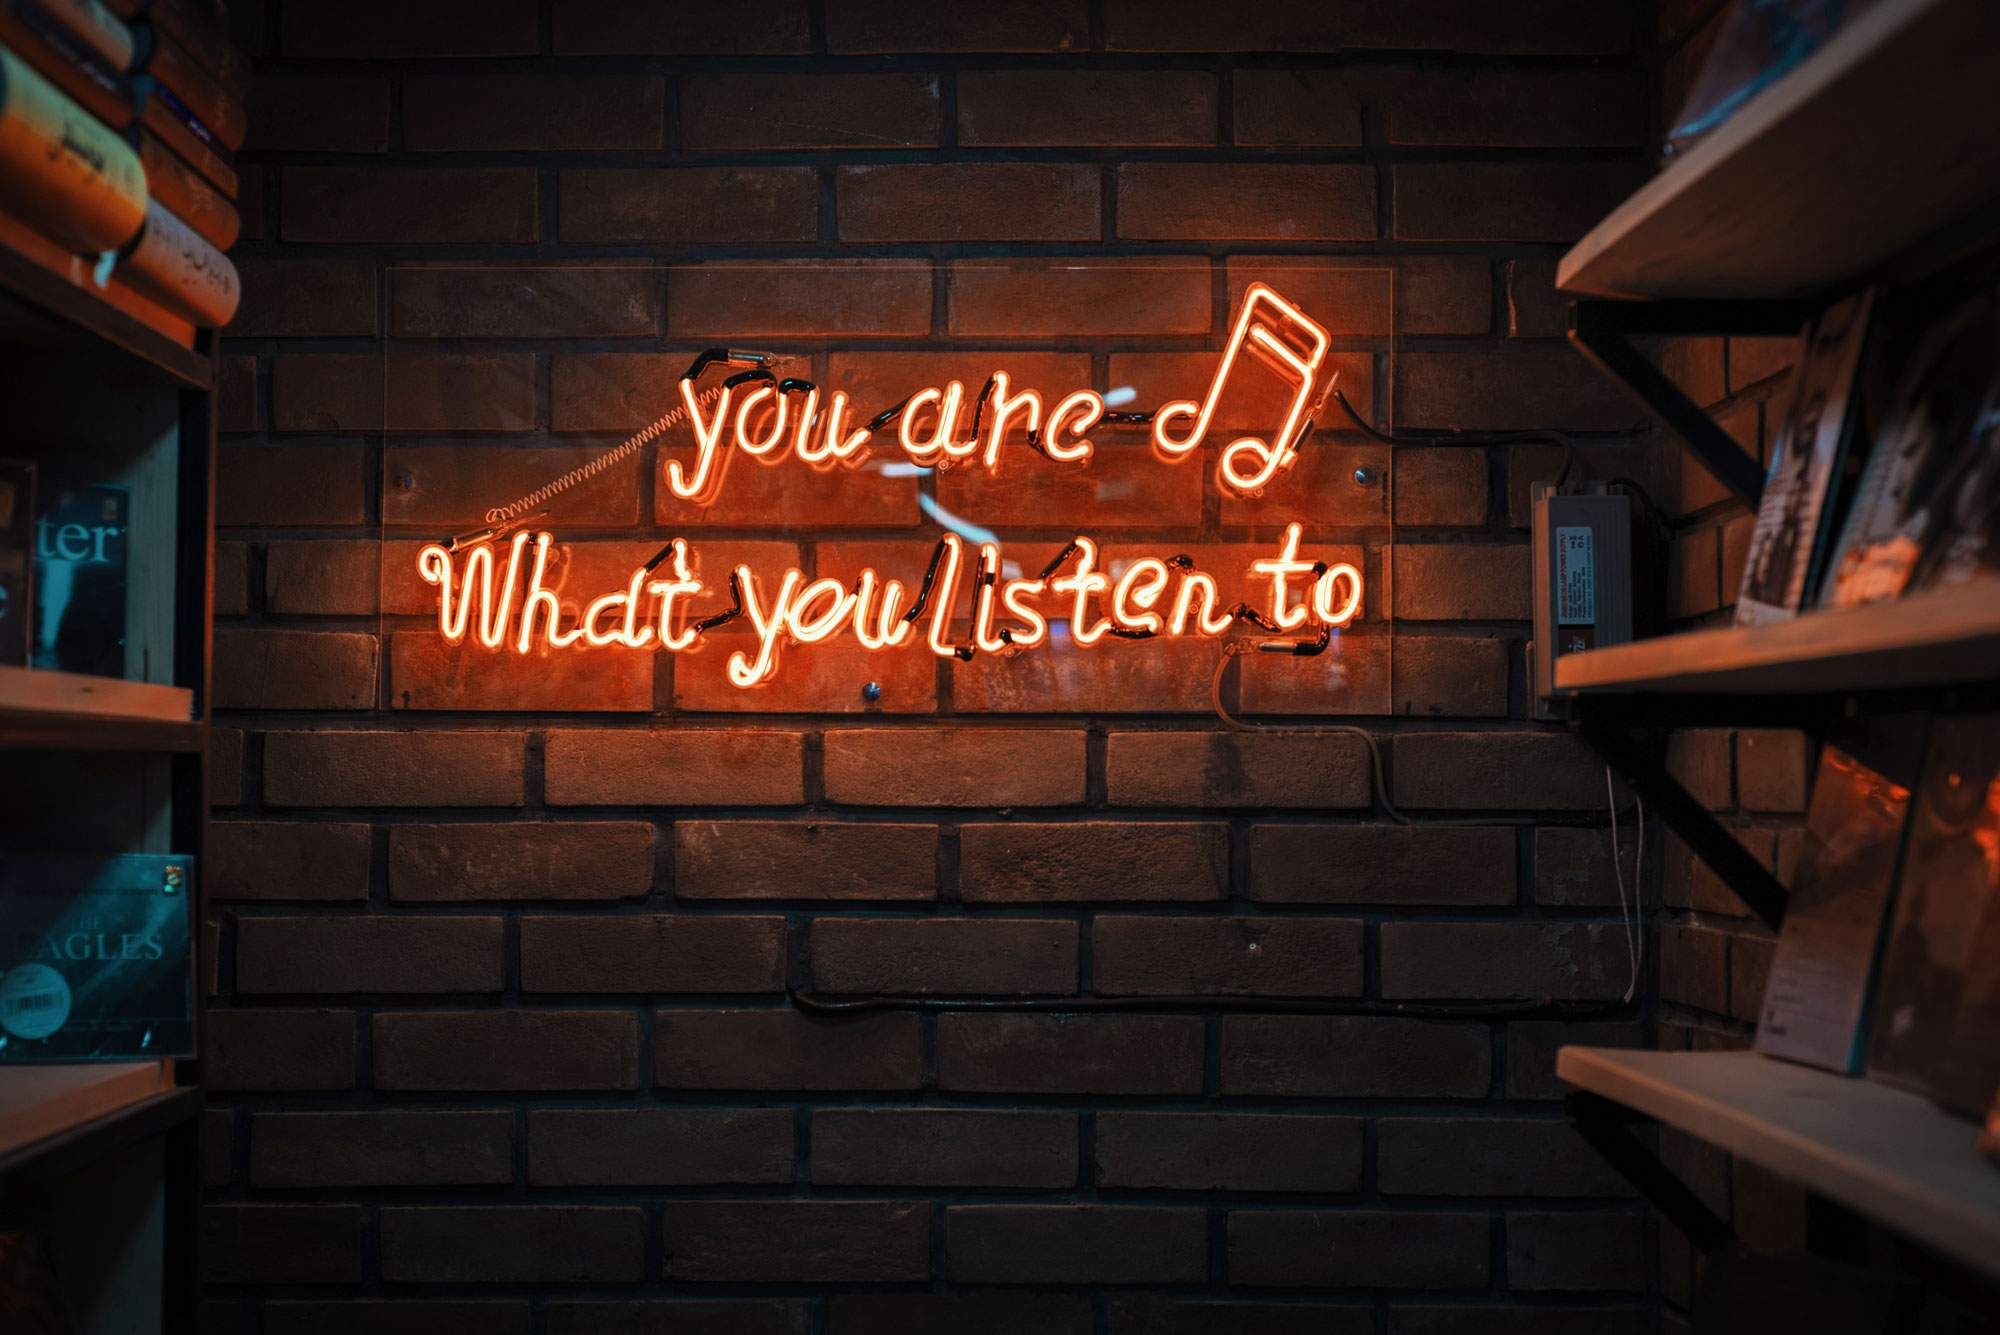 music-podcasts-audiobooks-road-trip